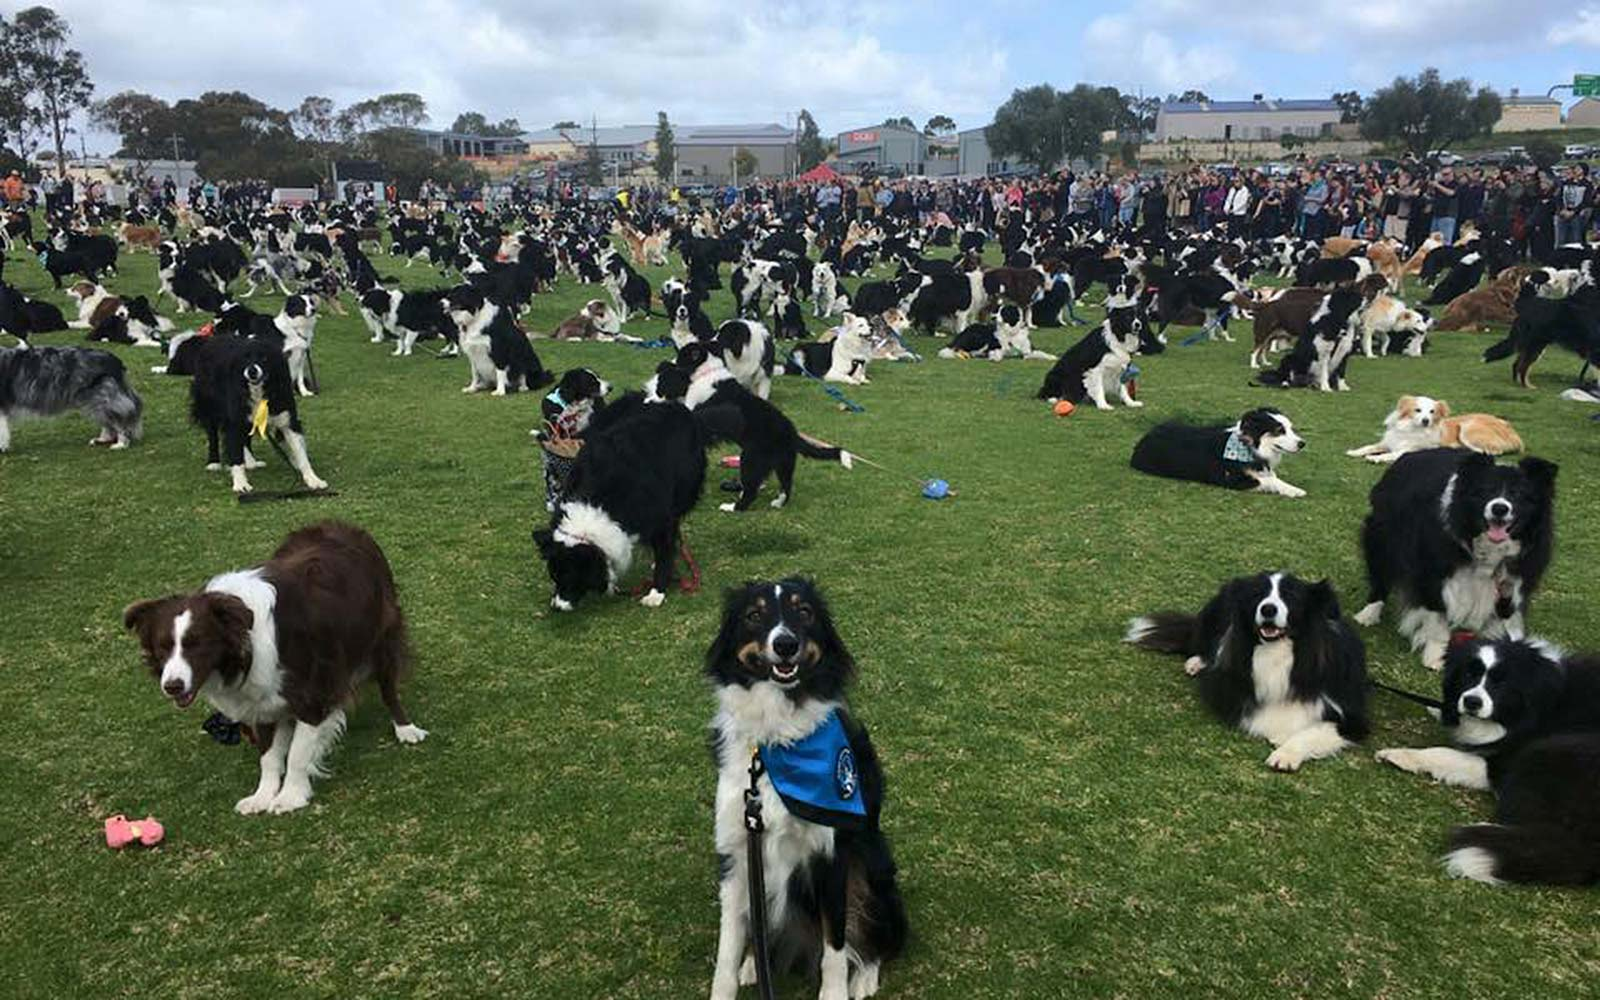 576 Border Collies Showed Up at a Park in Australia to Break a World Record